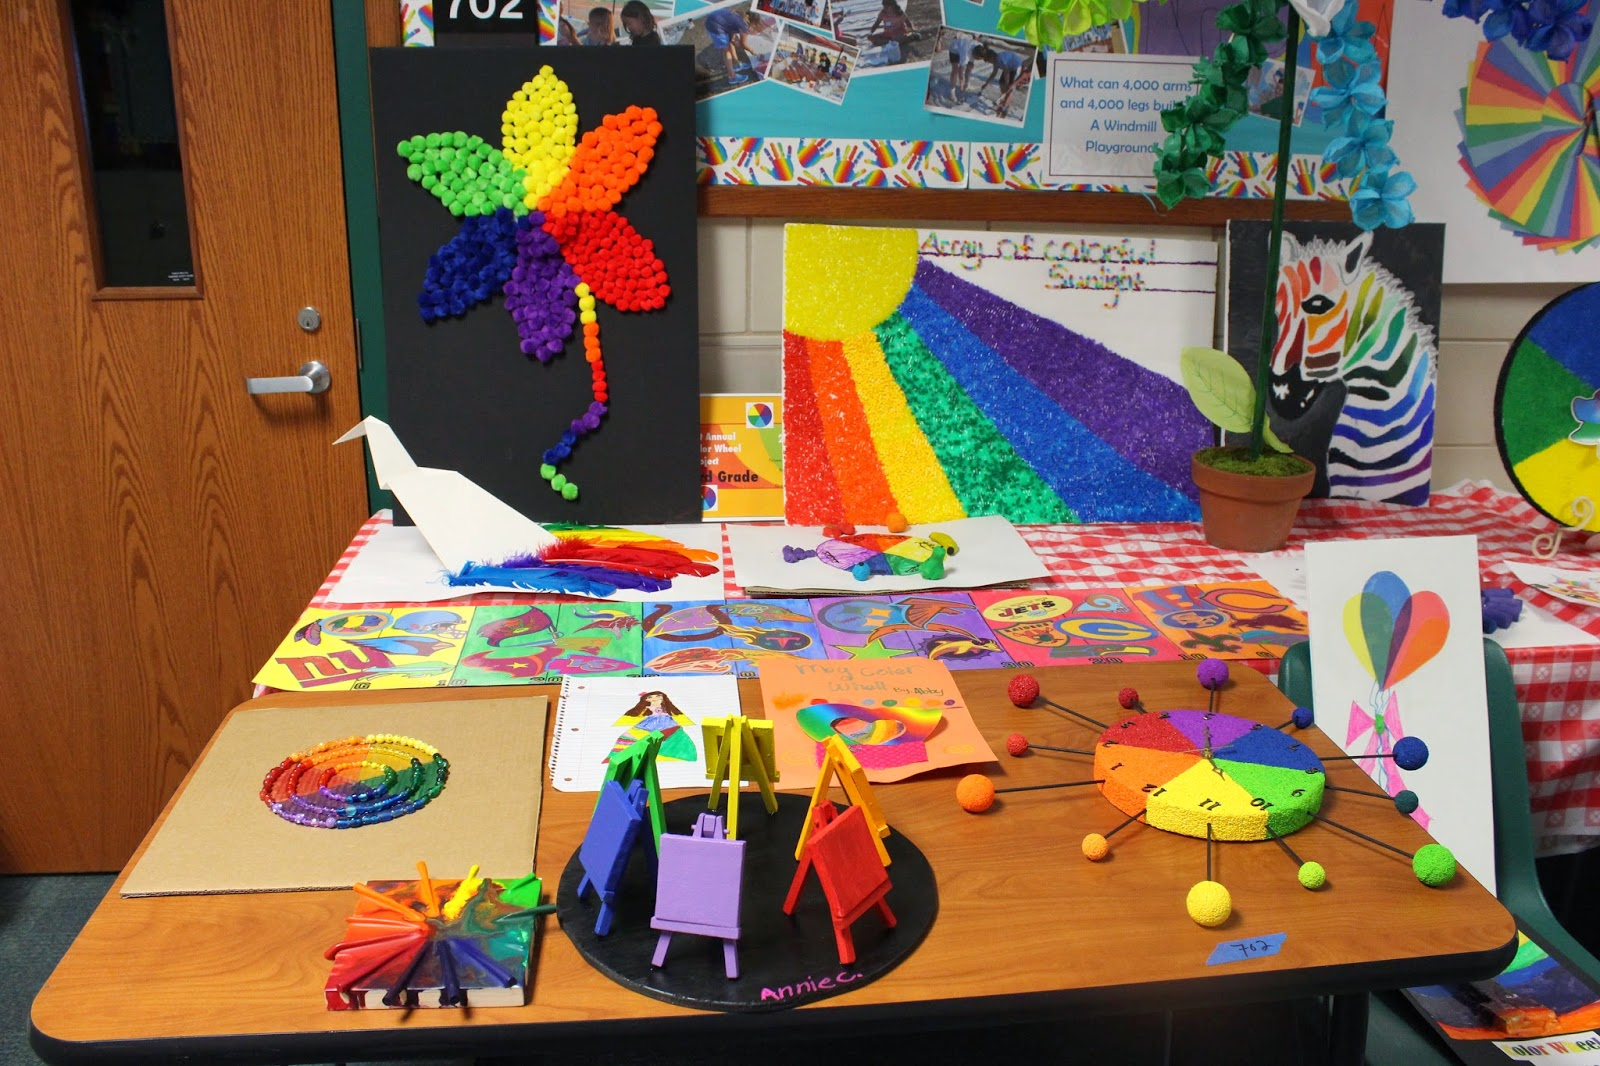 Color Wheel Project Ideas Depicts a Color Wheel